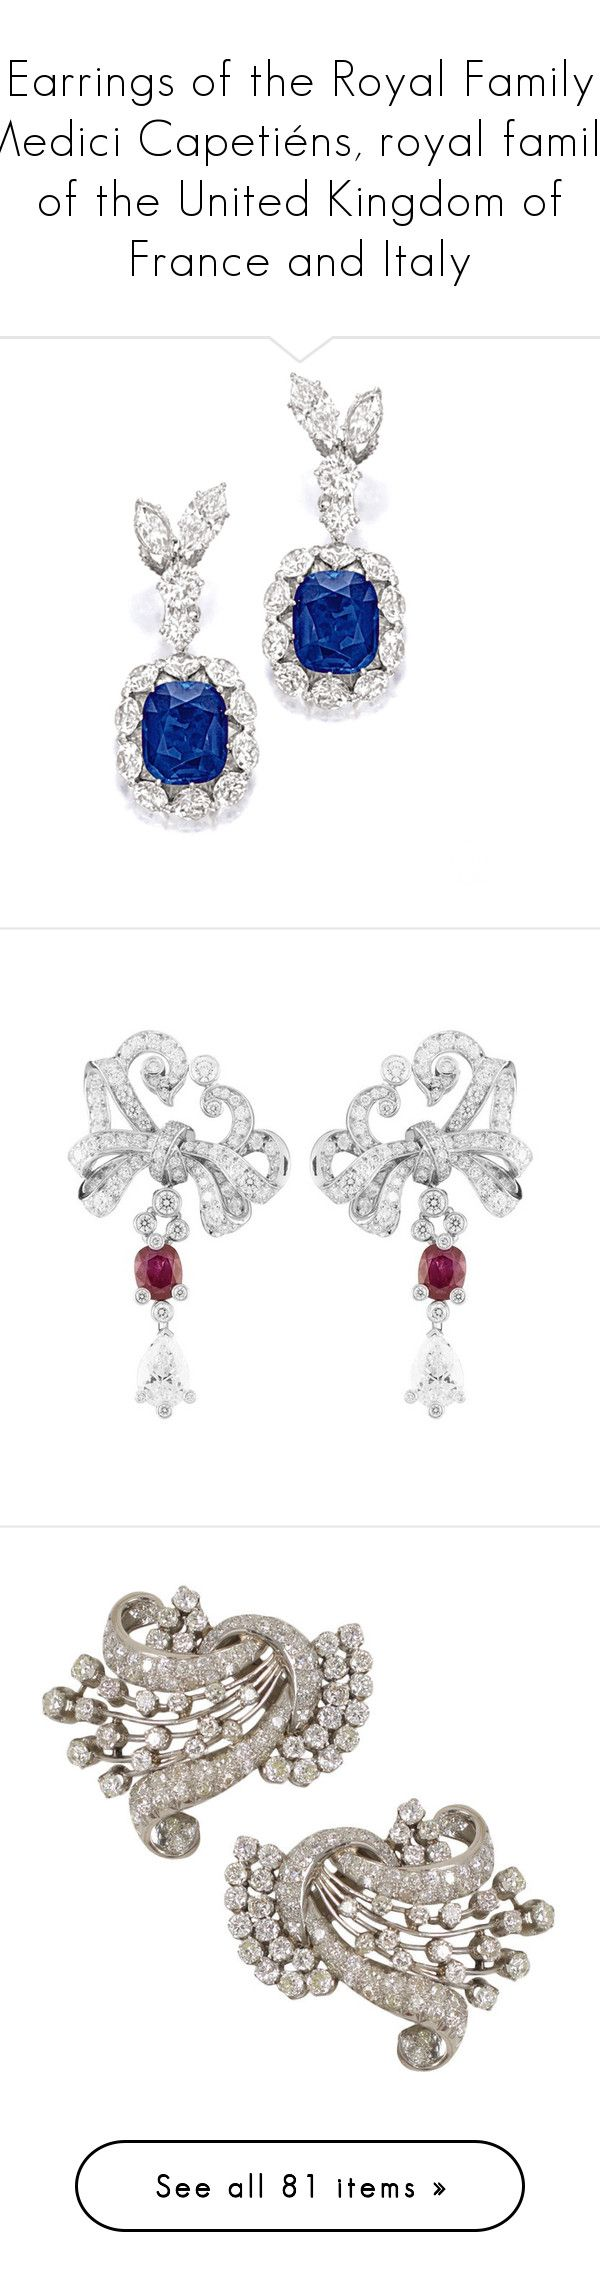 """""""Earrings of the Royal Family Medici Capetiéns, royal family of the United Kingdom of France and Italy"""" by changeofyou ❤ liked on Polyvore featuring jewelry, earrings, wine jewelry, earring jewelry, brinco, pasquale bruni jewelry, pasquale bruni, sapphire jewellery, stud earrings and sapphire stud earrings"""